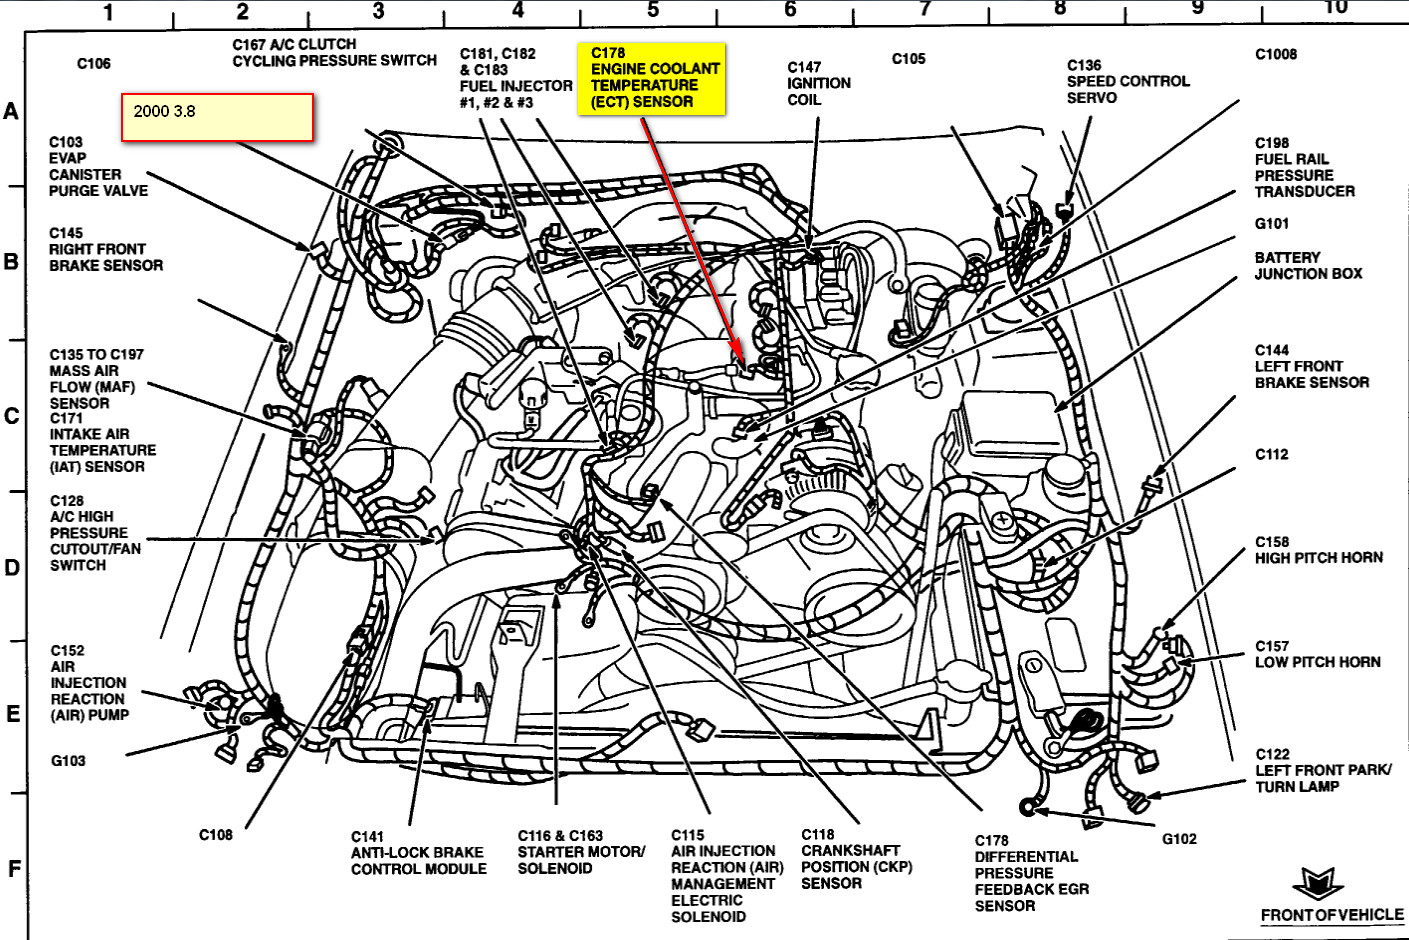 1991 Mazda Miata Engine Diagram Simple Guide About Wiring Chevy Impala 3800 Temperature Sensor Location Free